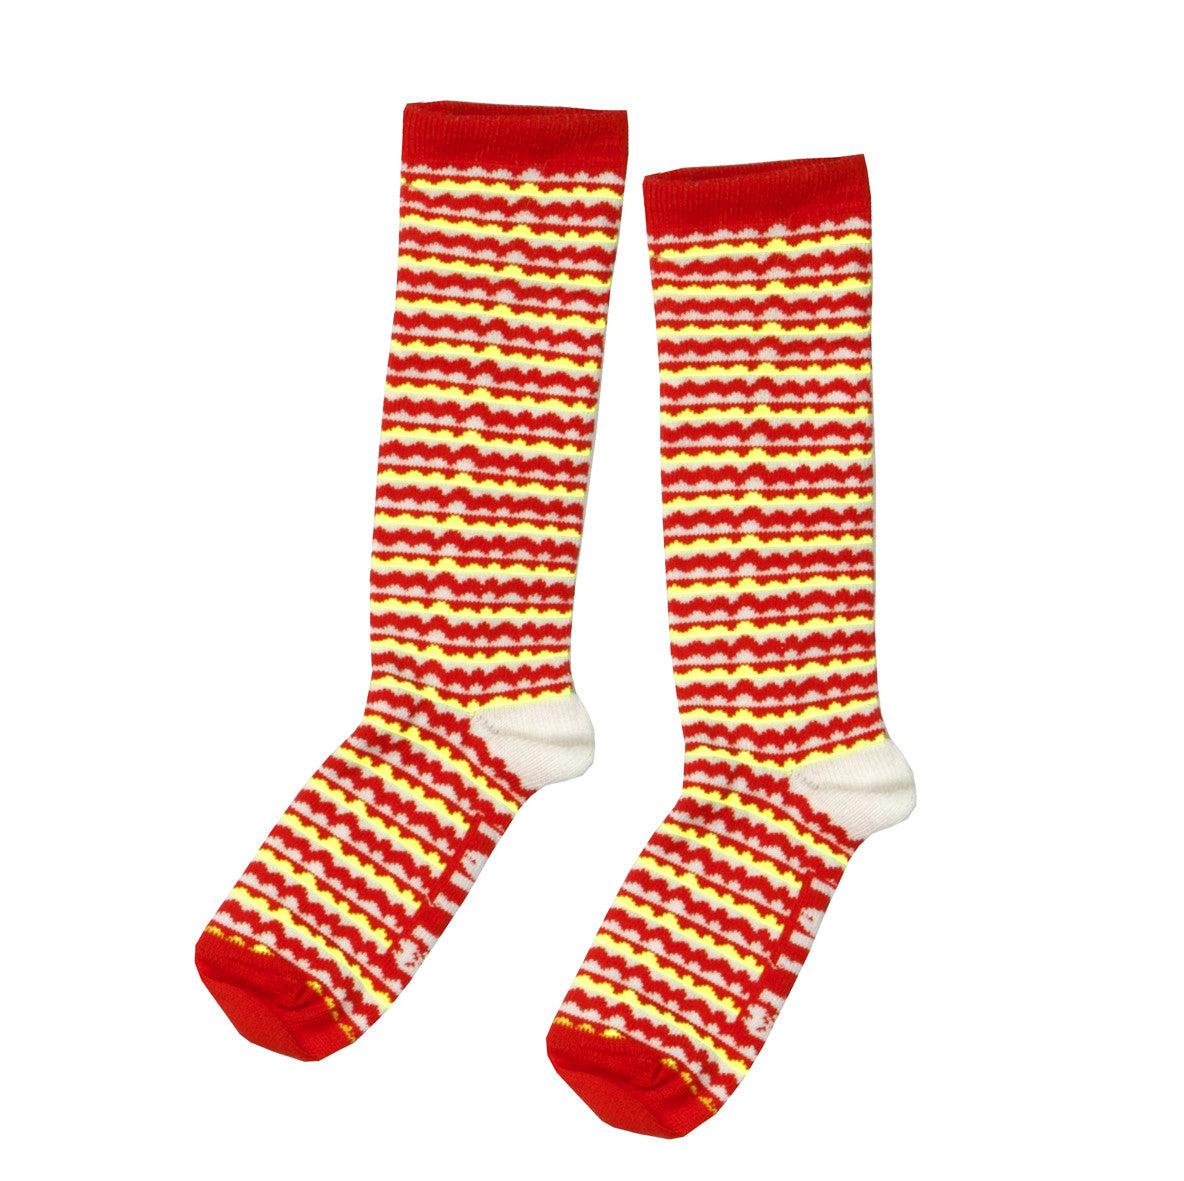 Children's Socks - Multi Wiggle - Palava